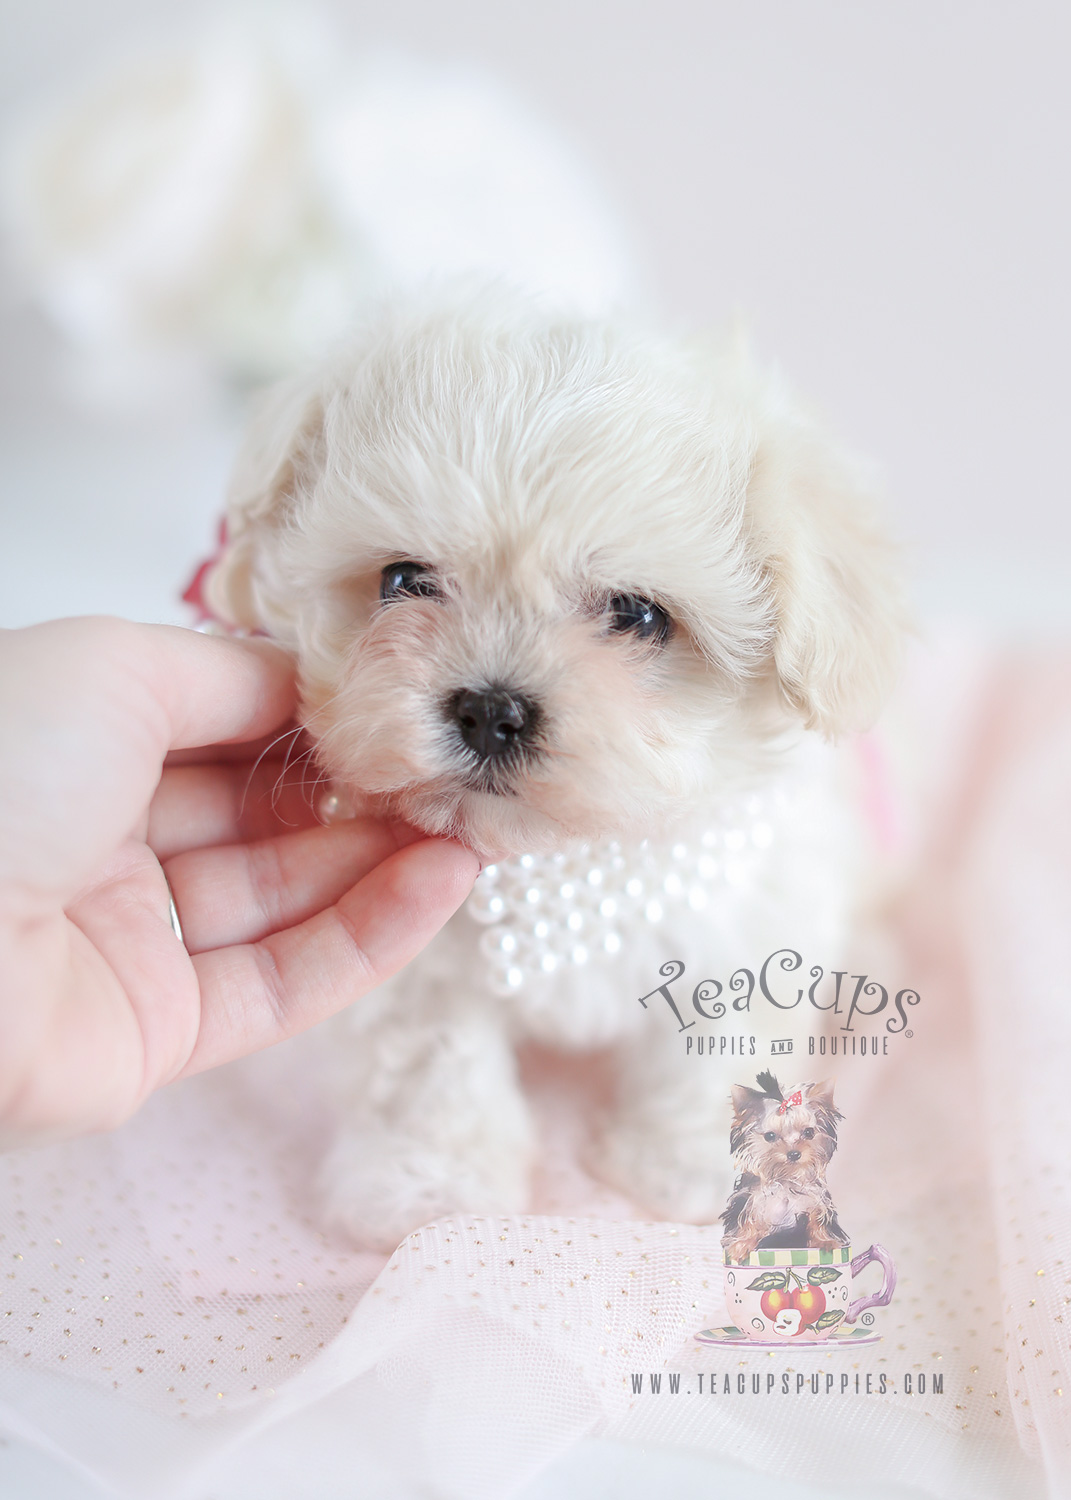 Maltipoo Puppies Teacup Maltipoos For Sale By Teacups Teacup Puppies Boutique